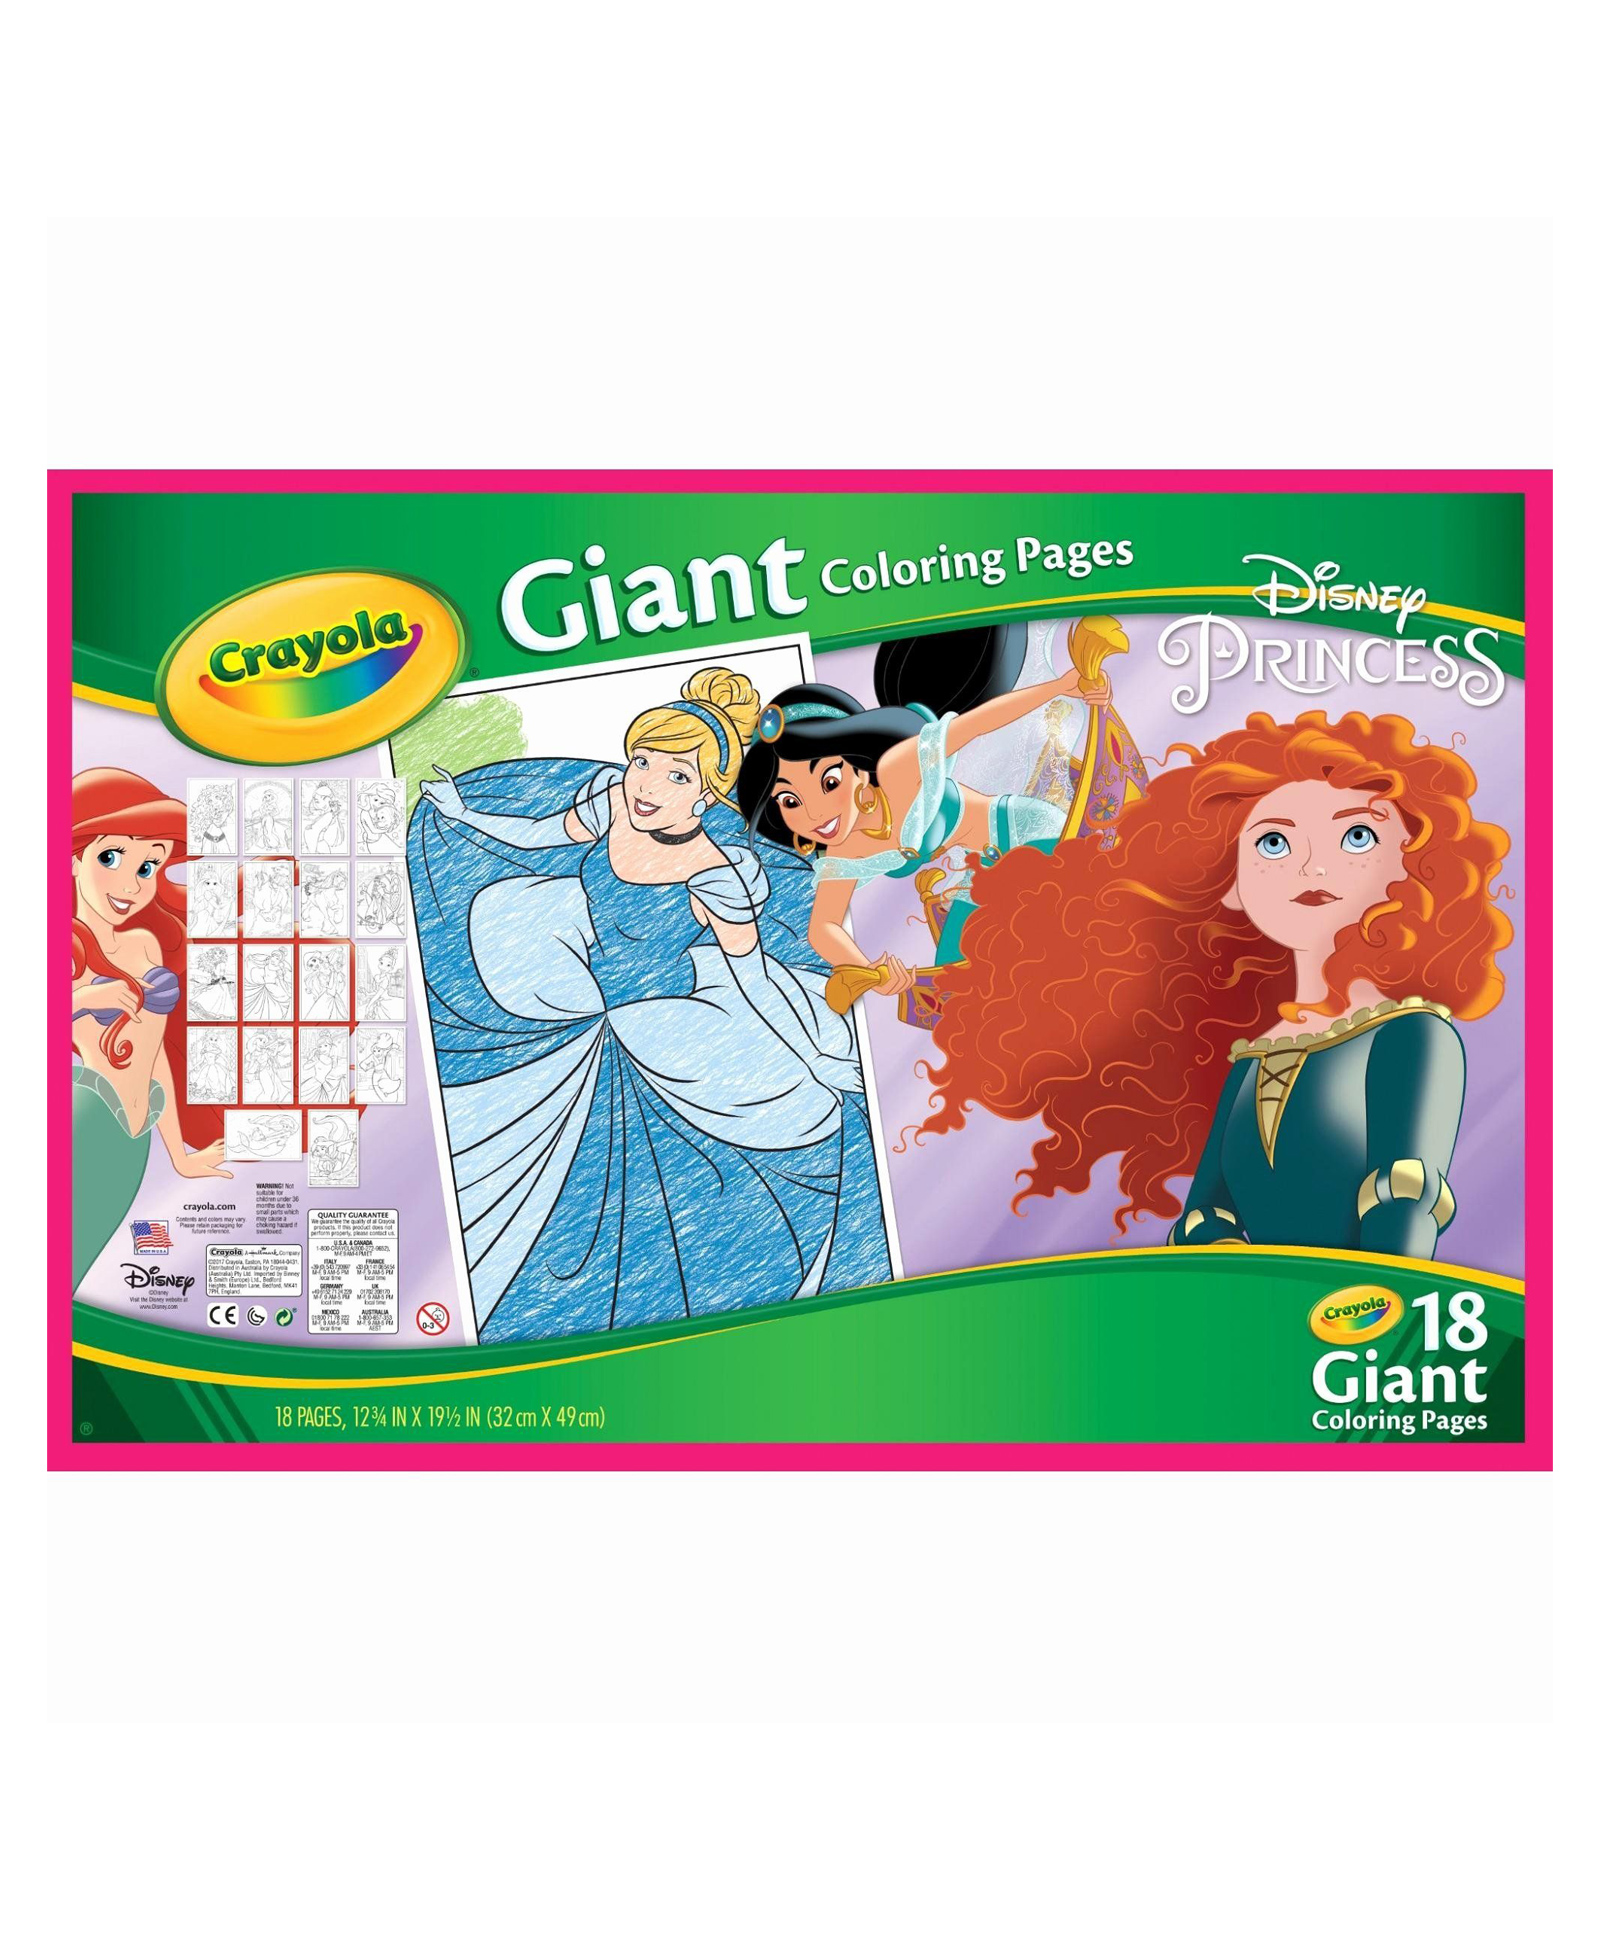 Crayola Giant Colouring Pages Disney Princess - 18 Pages ...